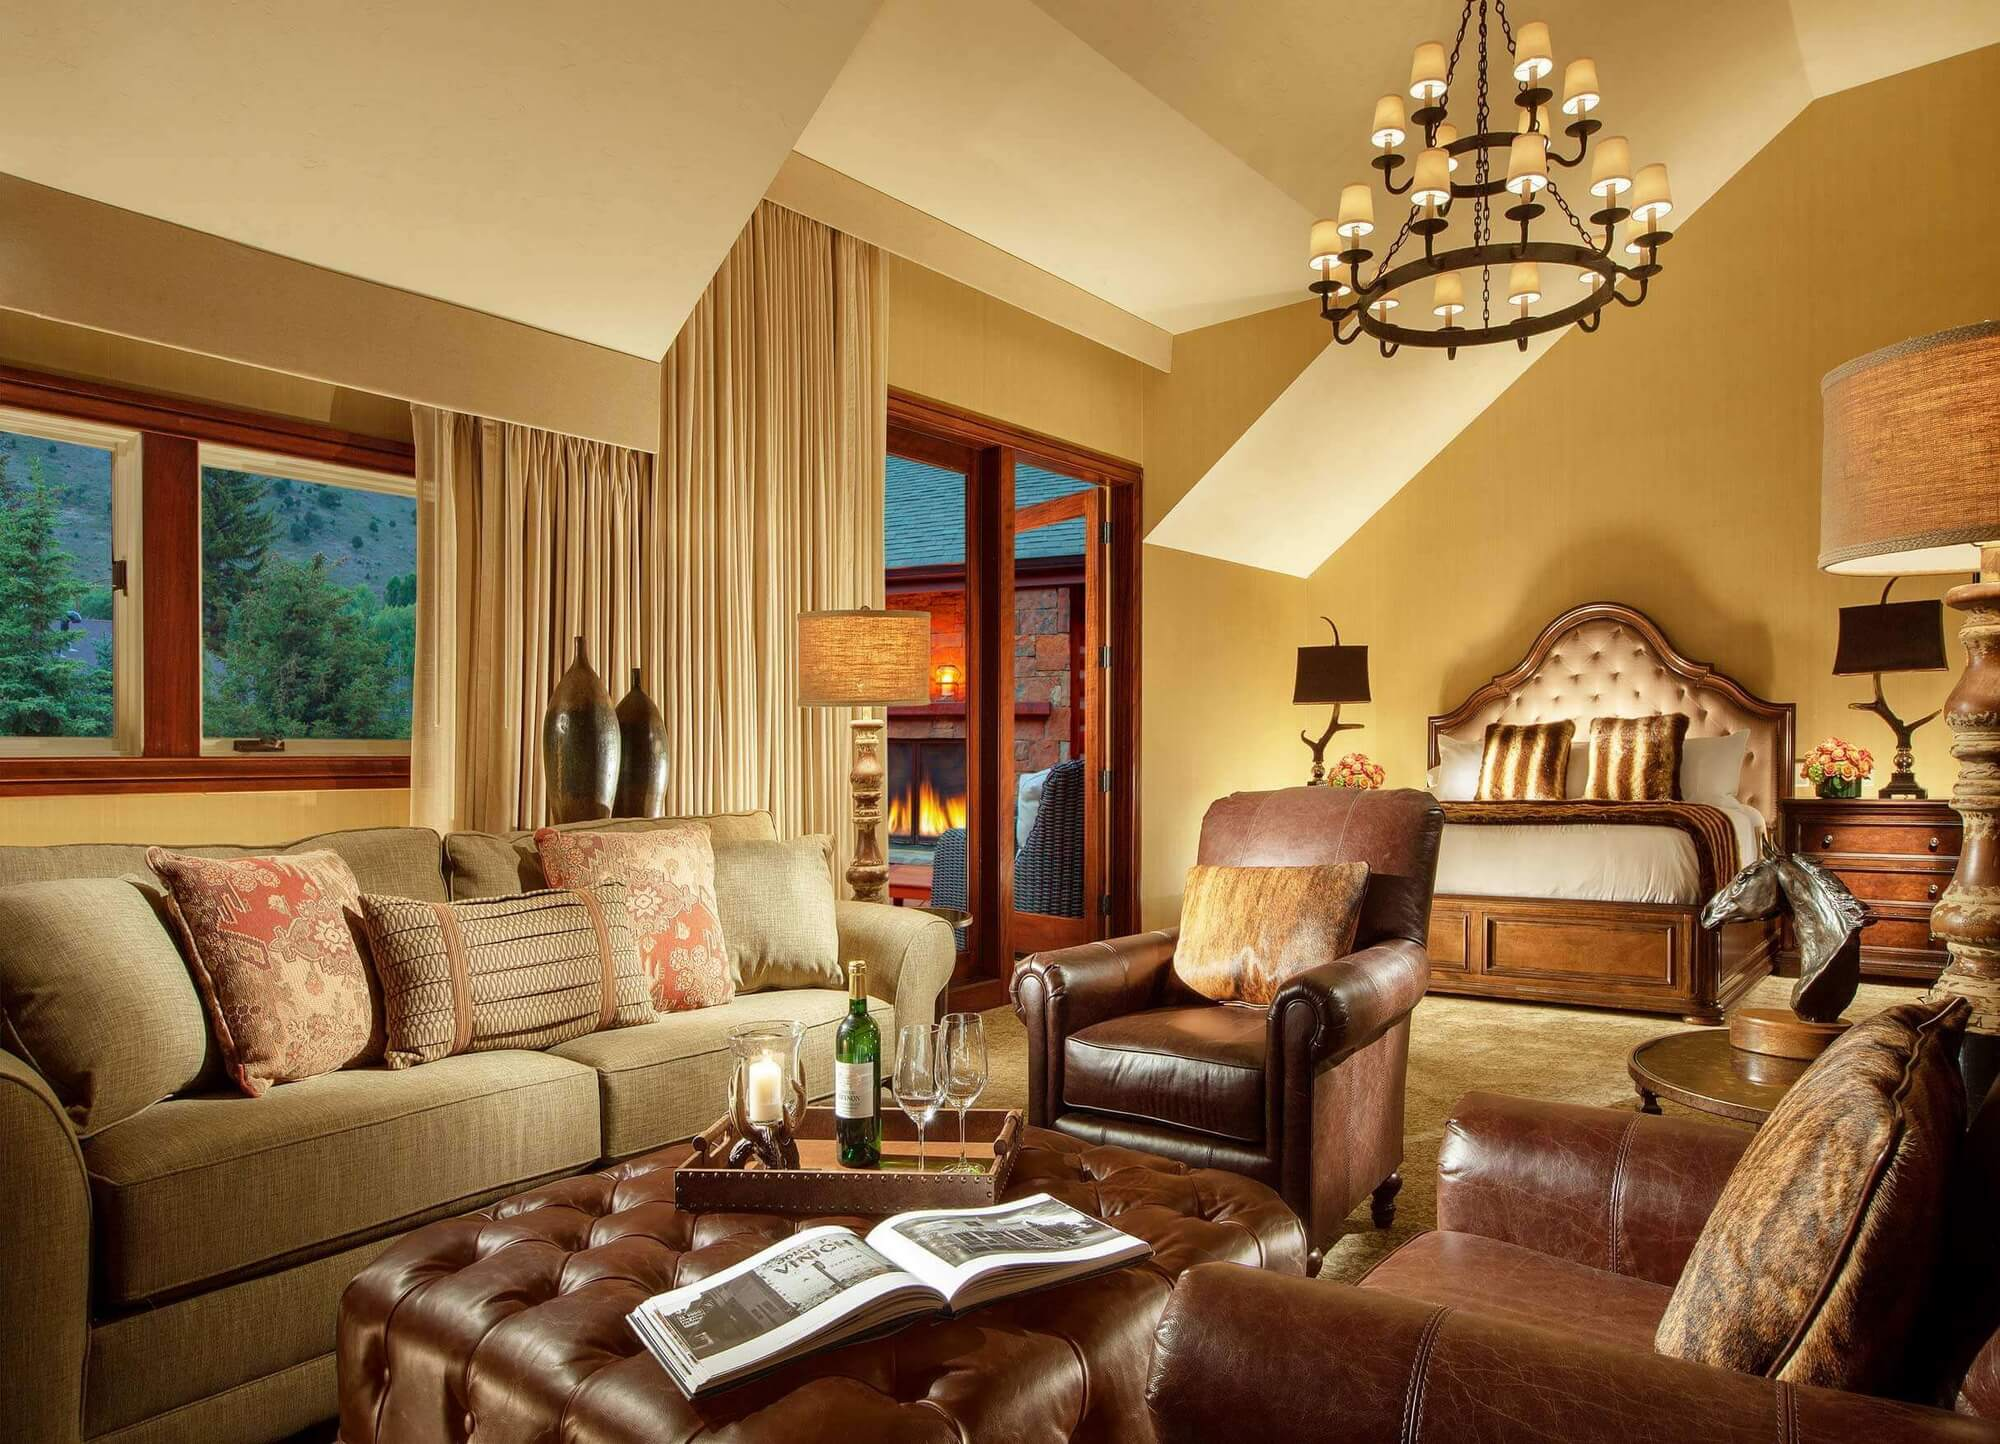 luxury hotel room with leather couches, king sized bed and outdoor fireplace